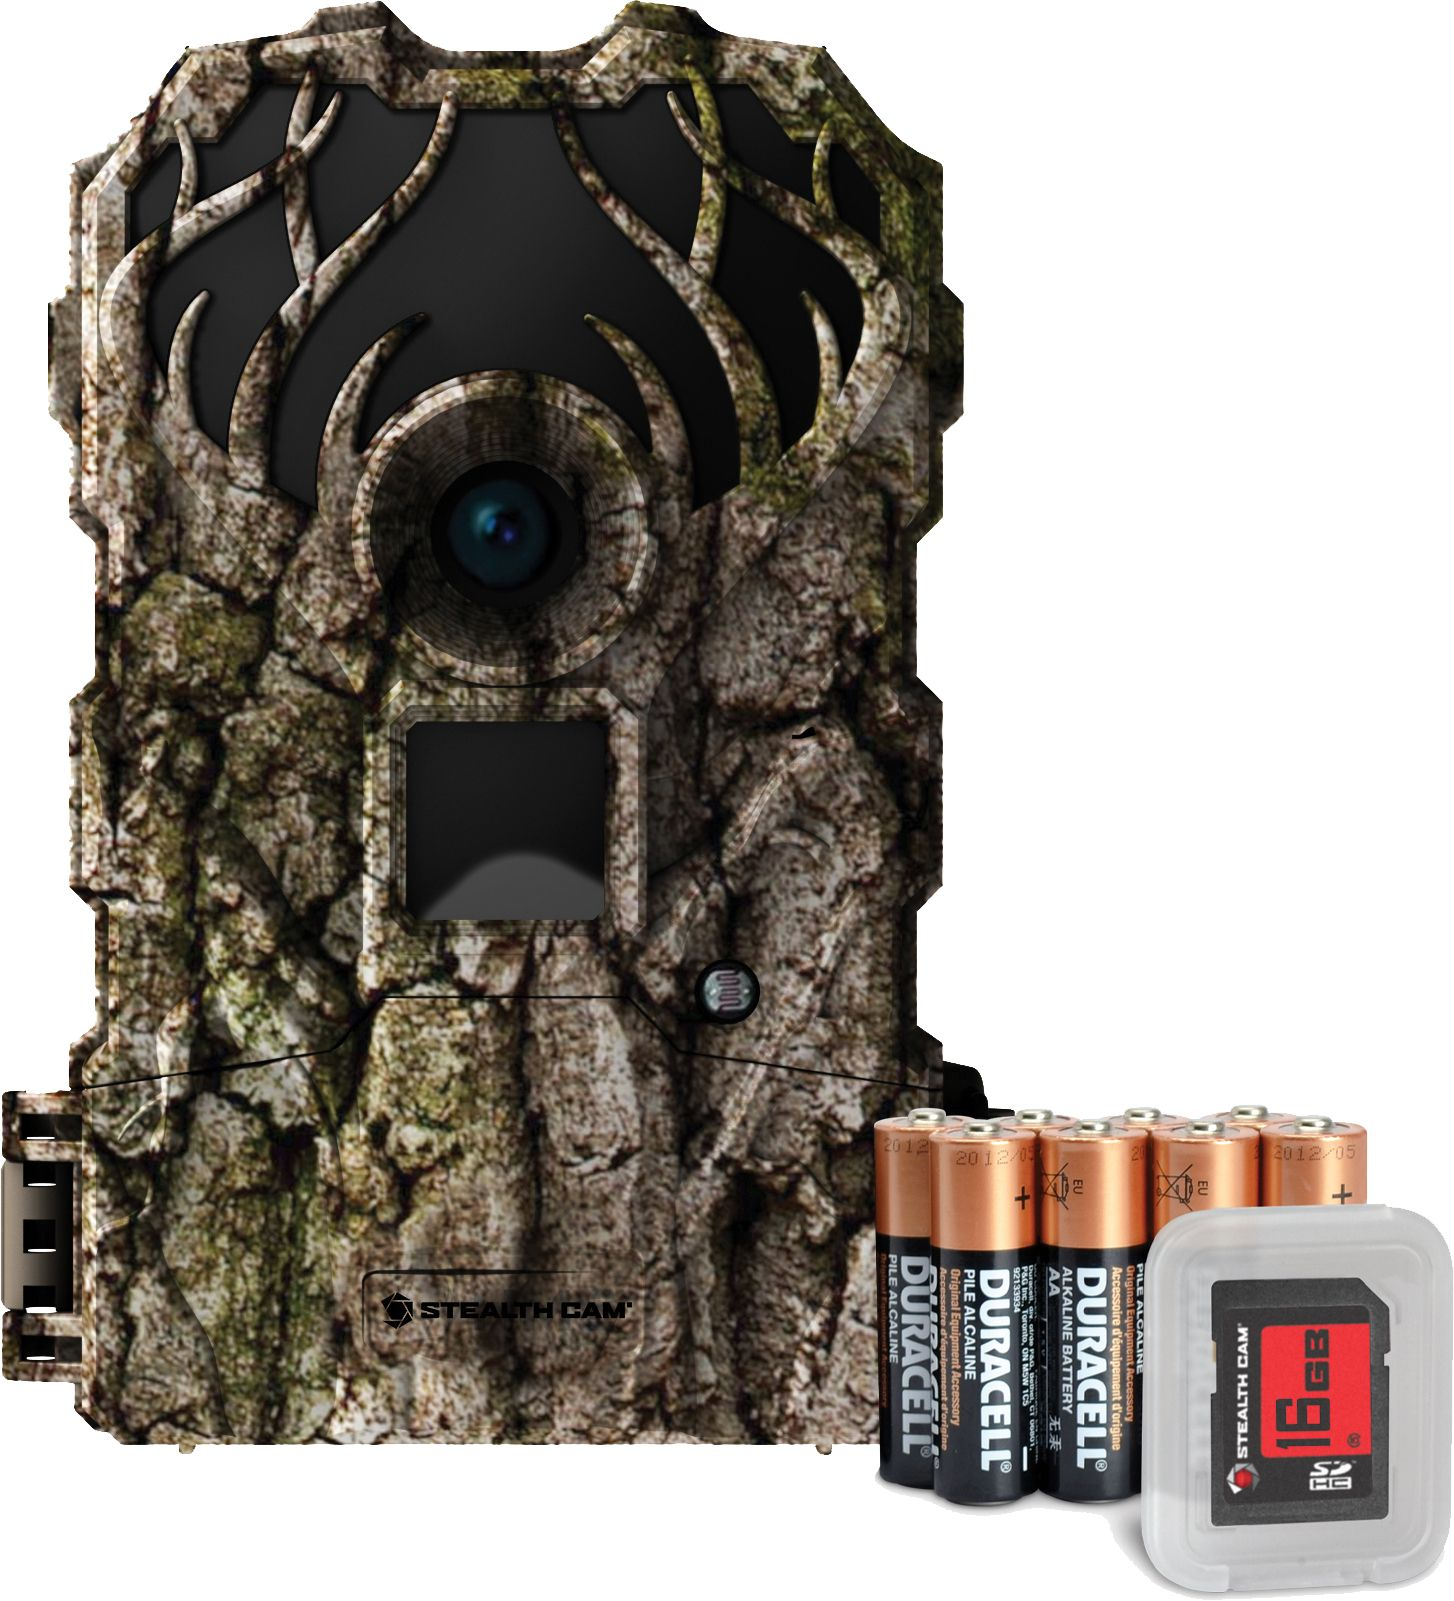 Stealth Cam Doubledrop IR Trail Camera Package – 16MP